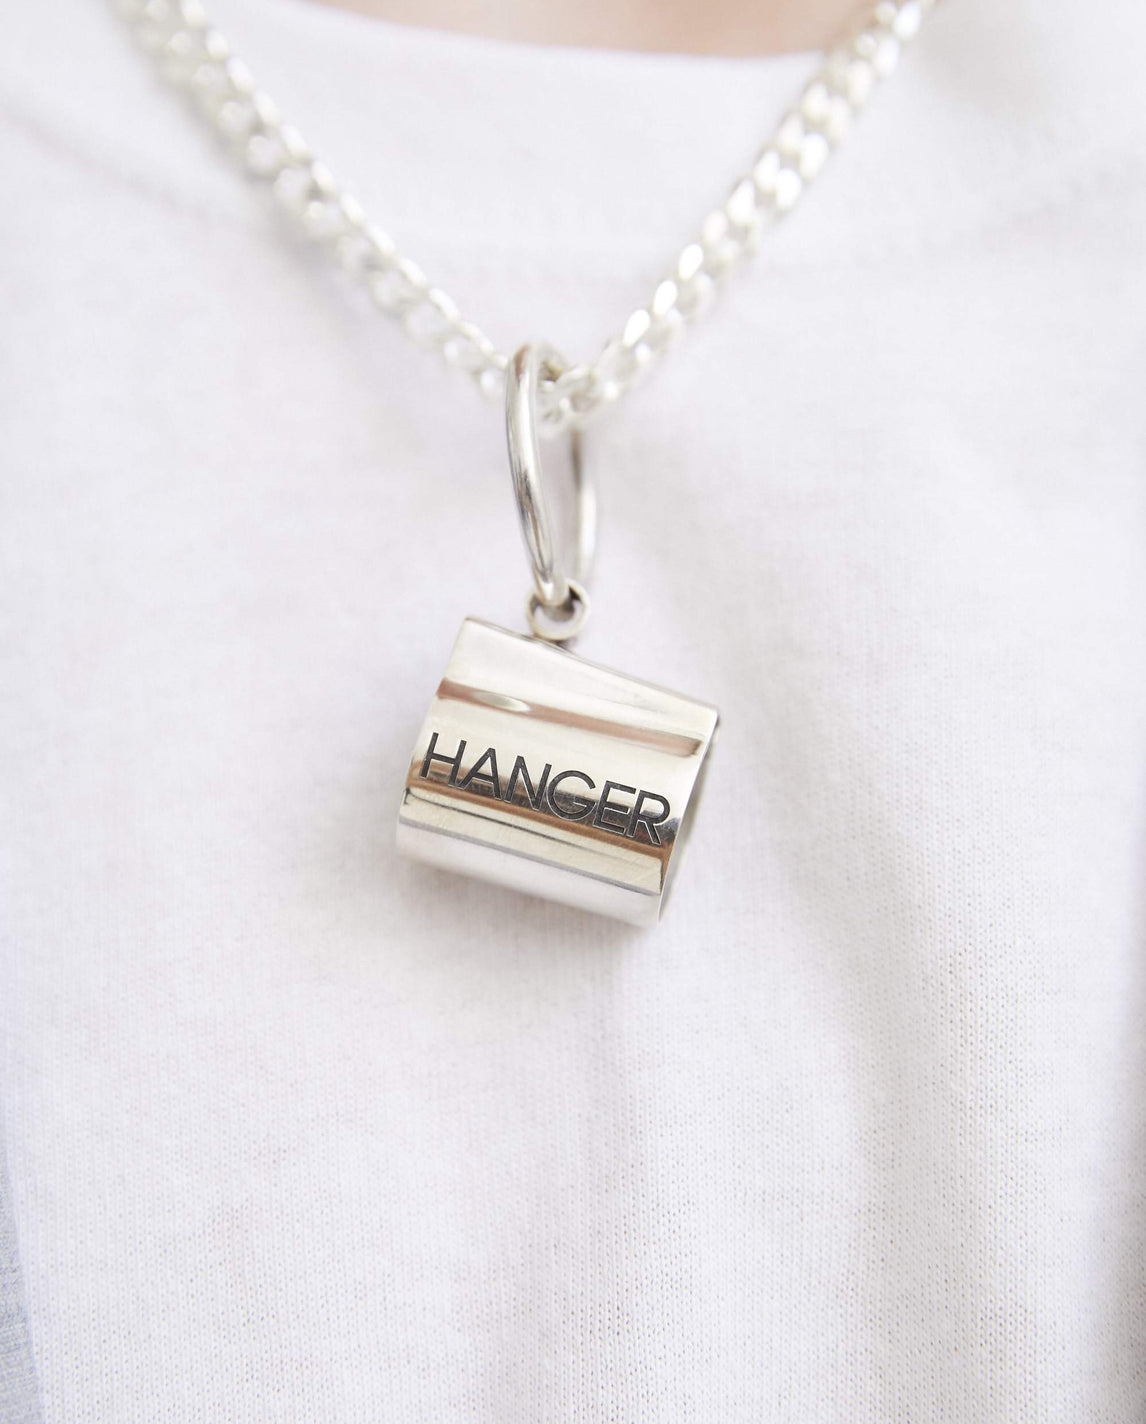 Lighter Case With Chain - Silver UNISEX HANGER